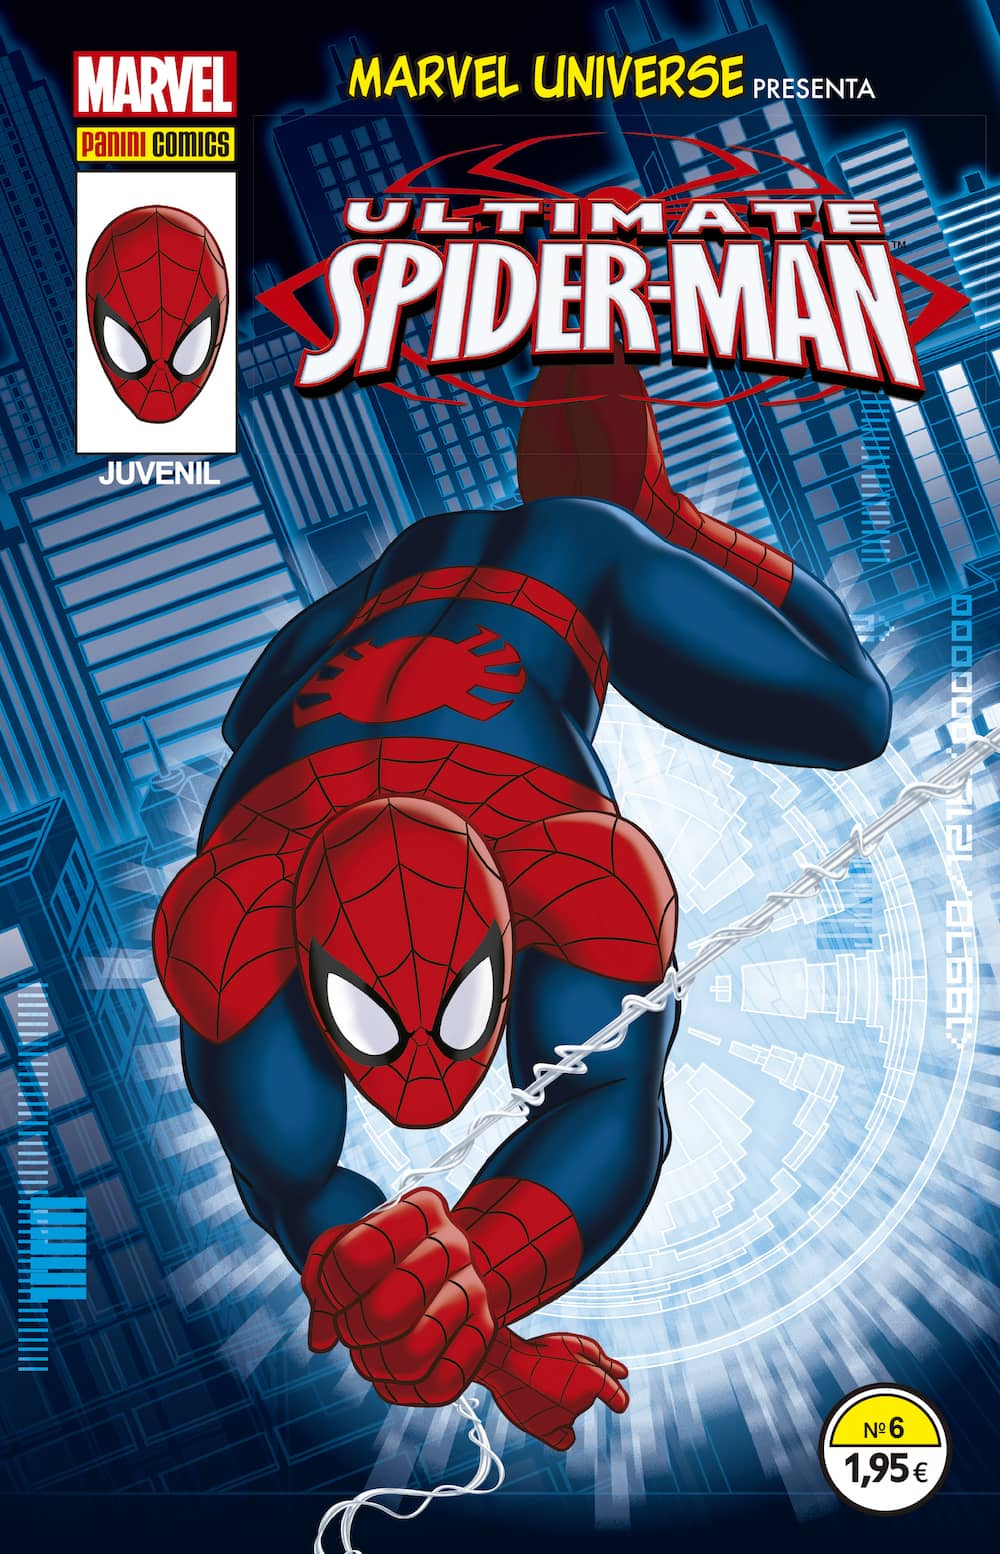 UNIVERSO MARVEL PRESENTA 06: ULTIMATE SPIDERMAN